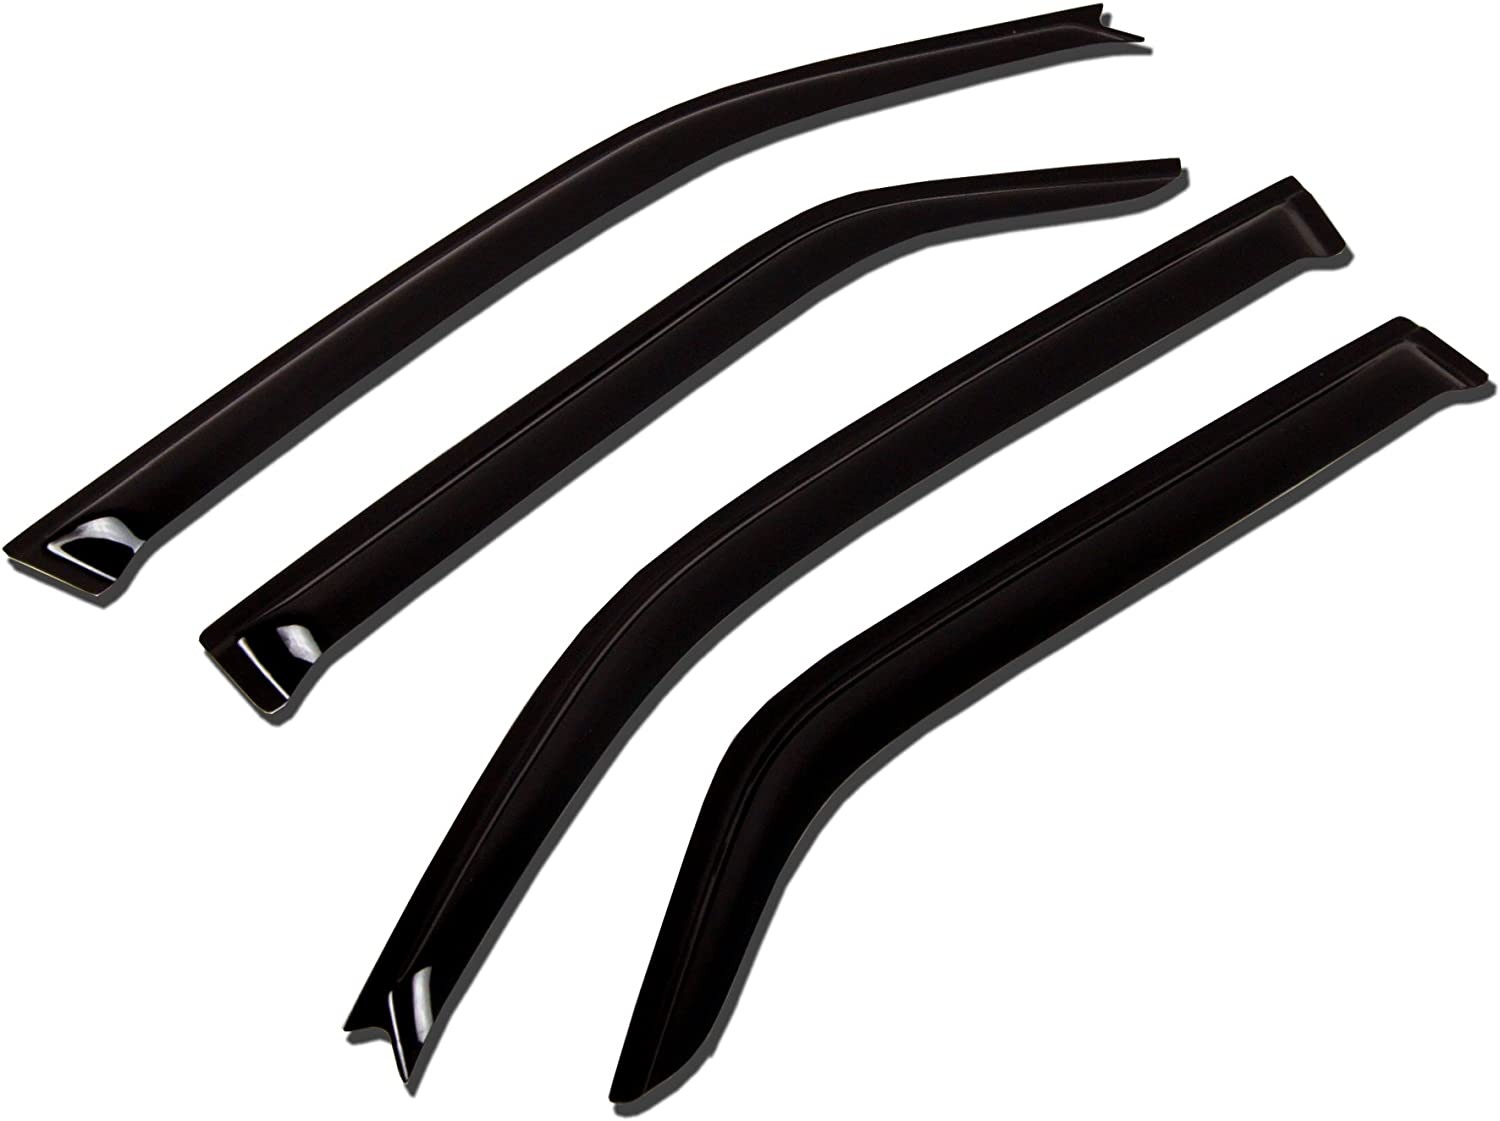 TuningPros WSV-014 Sunroof Moonroof and Out-Side Mount Window Visor Deflector Rain Guard Dark Smoke 5-pc Set